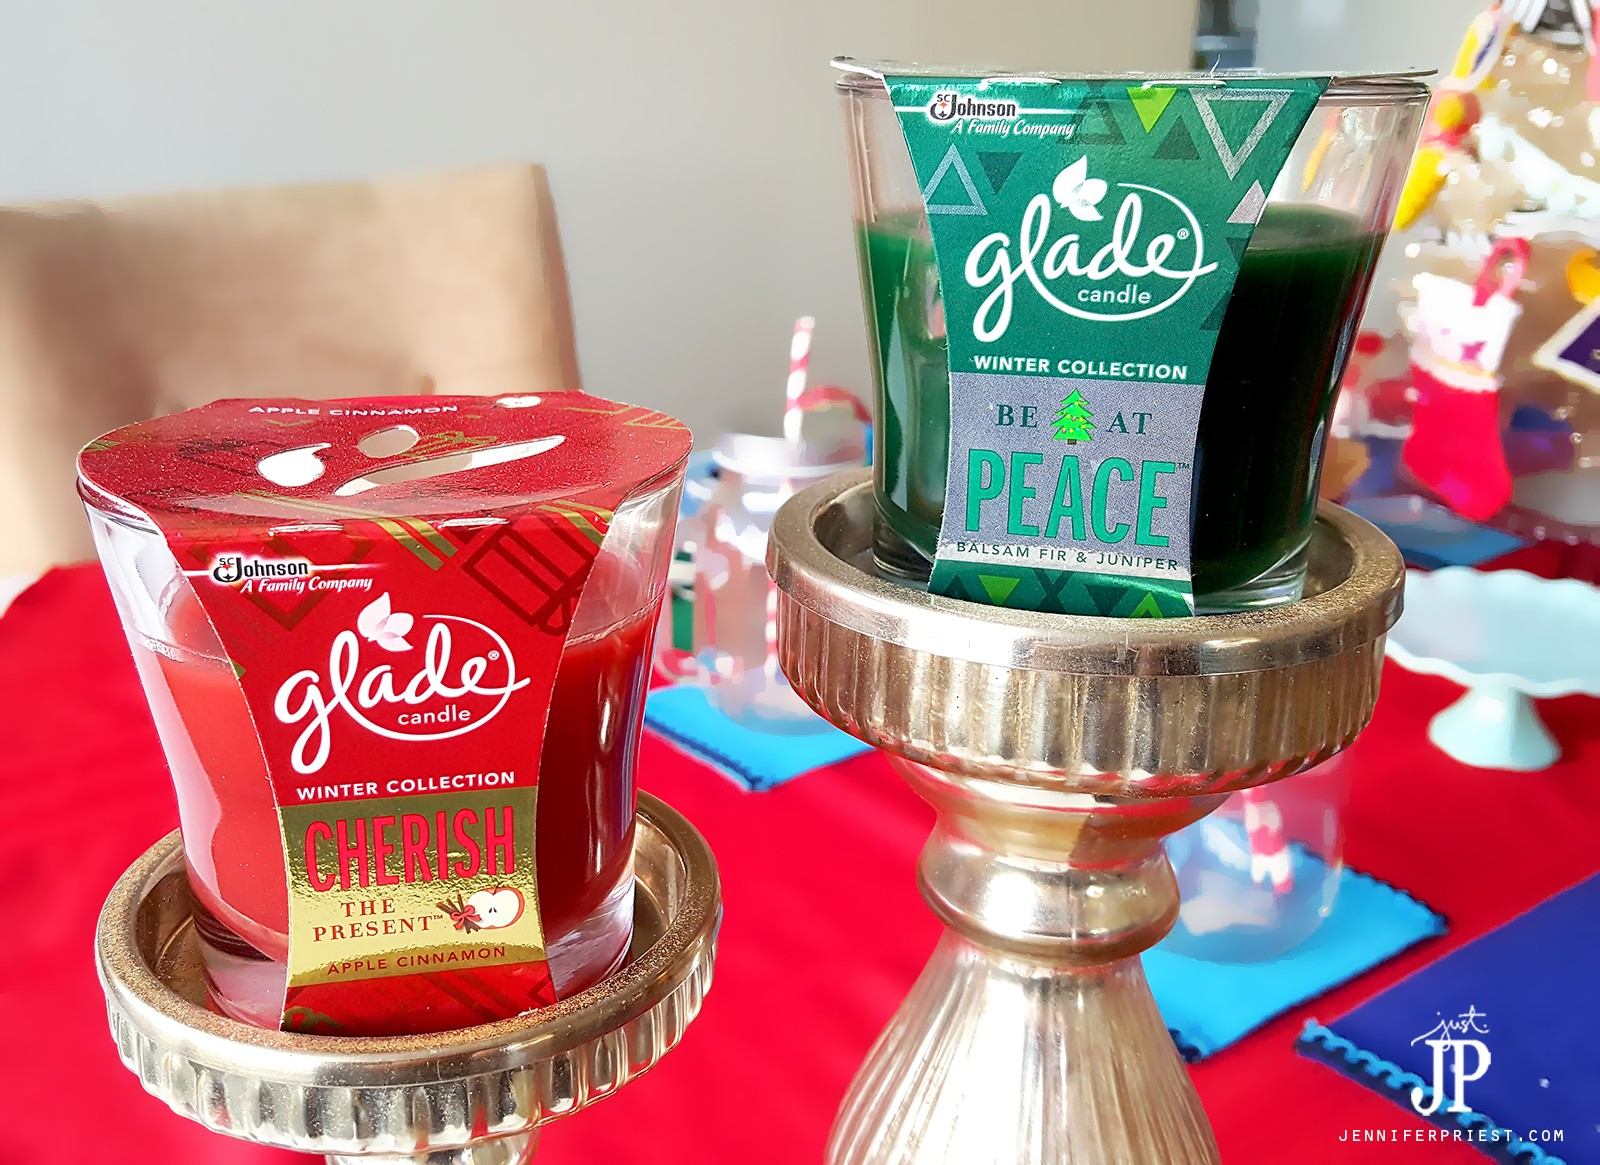 Glade-New-Winter-Collection-Candles-Spread-Joy-in-the-Home-JPriest